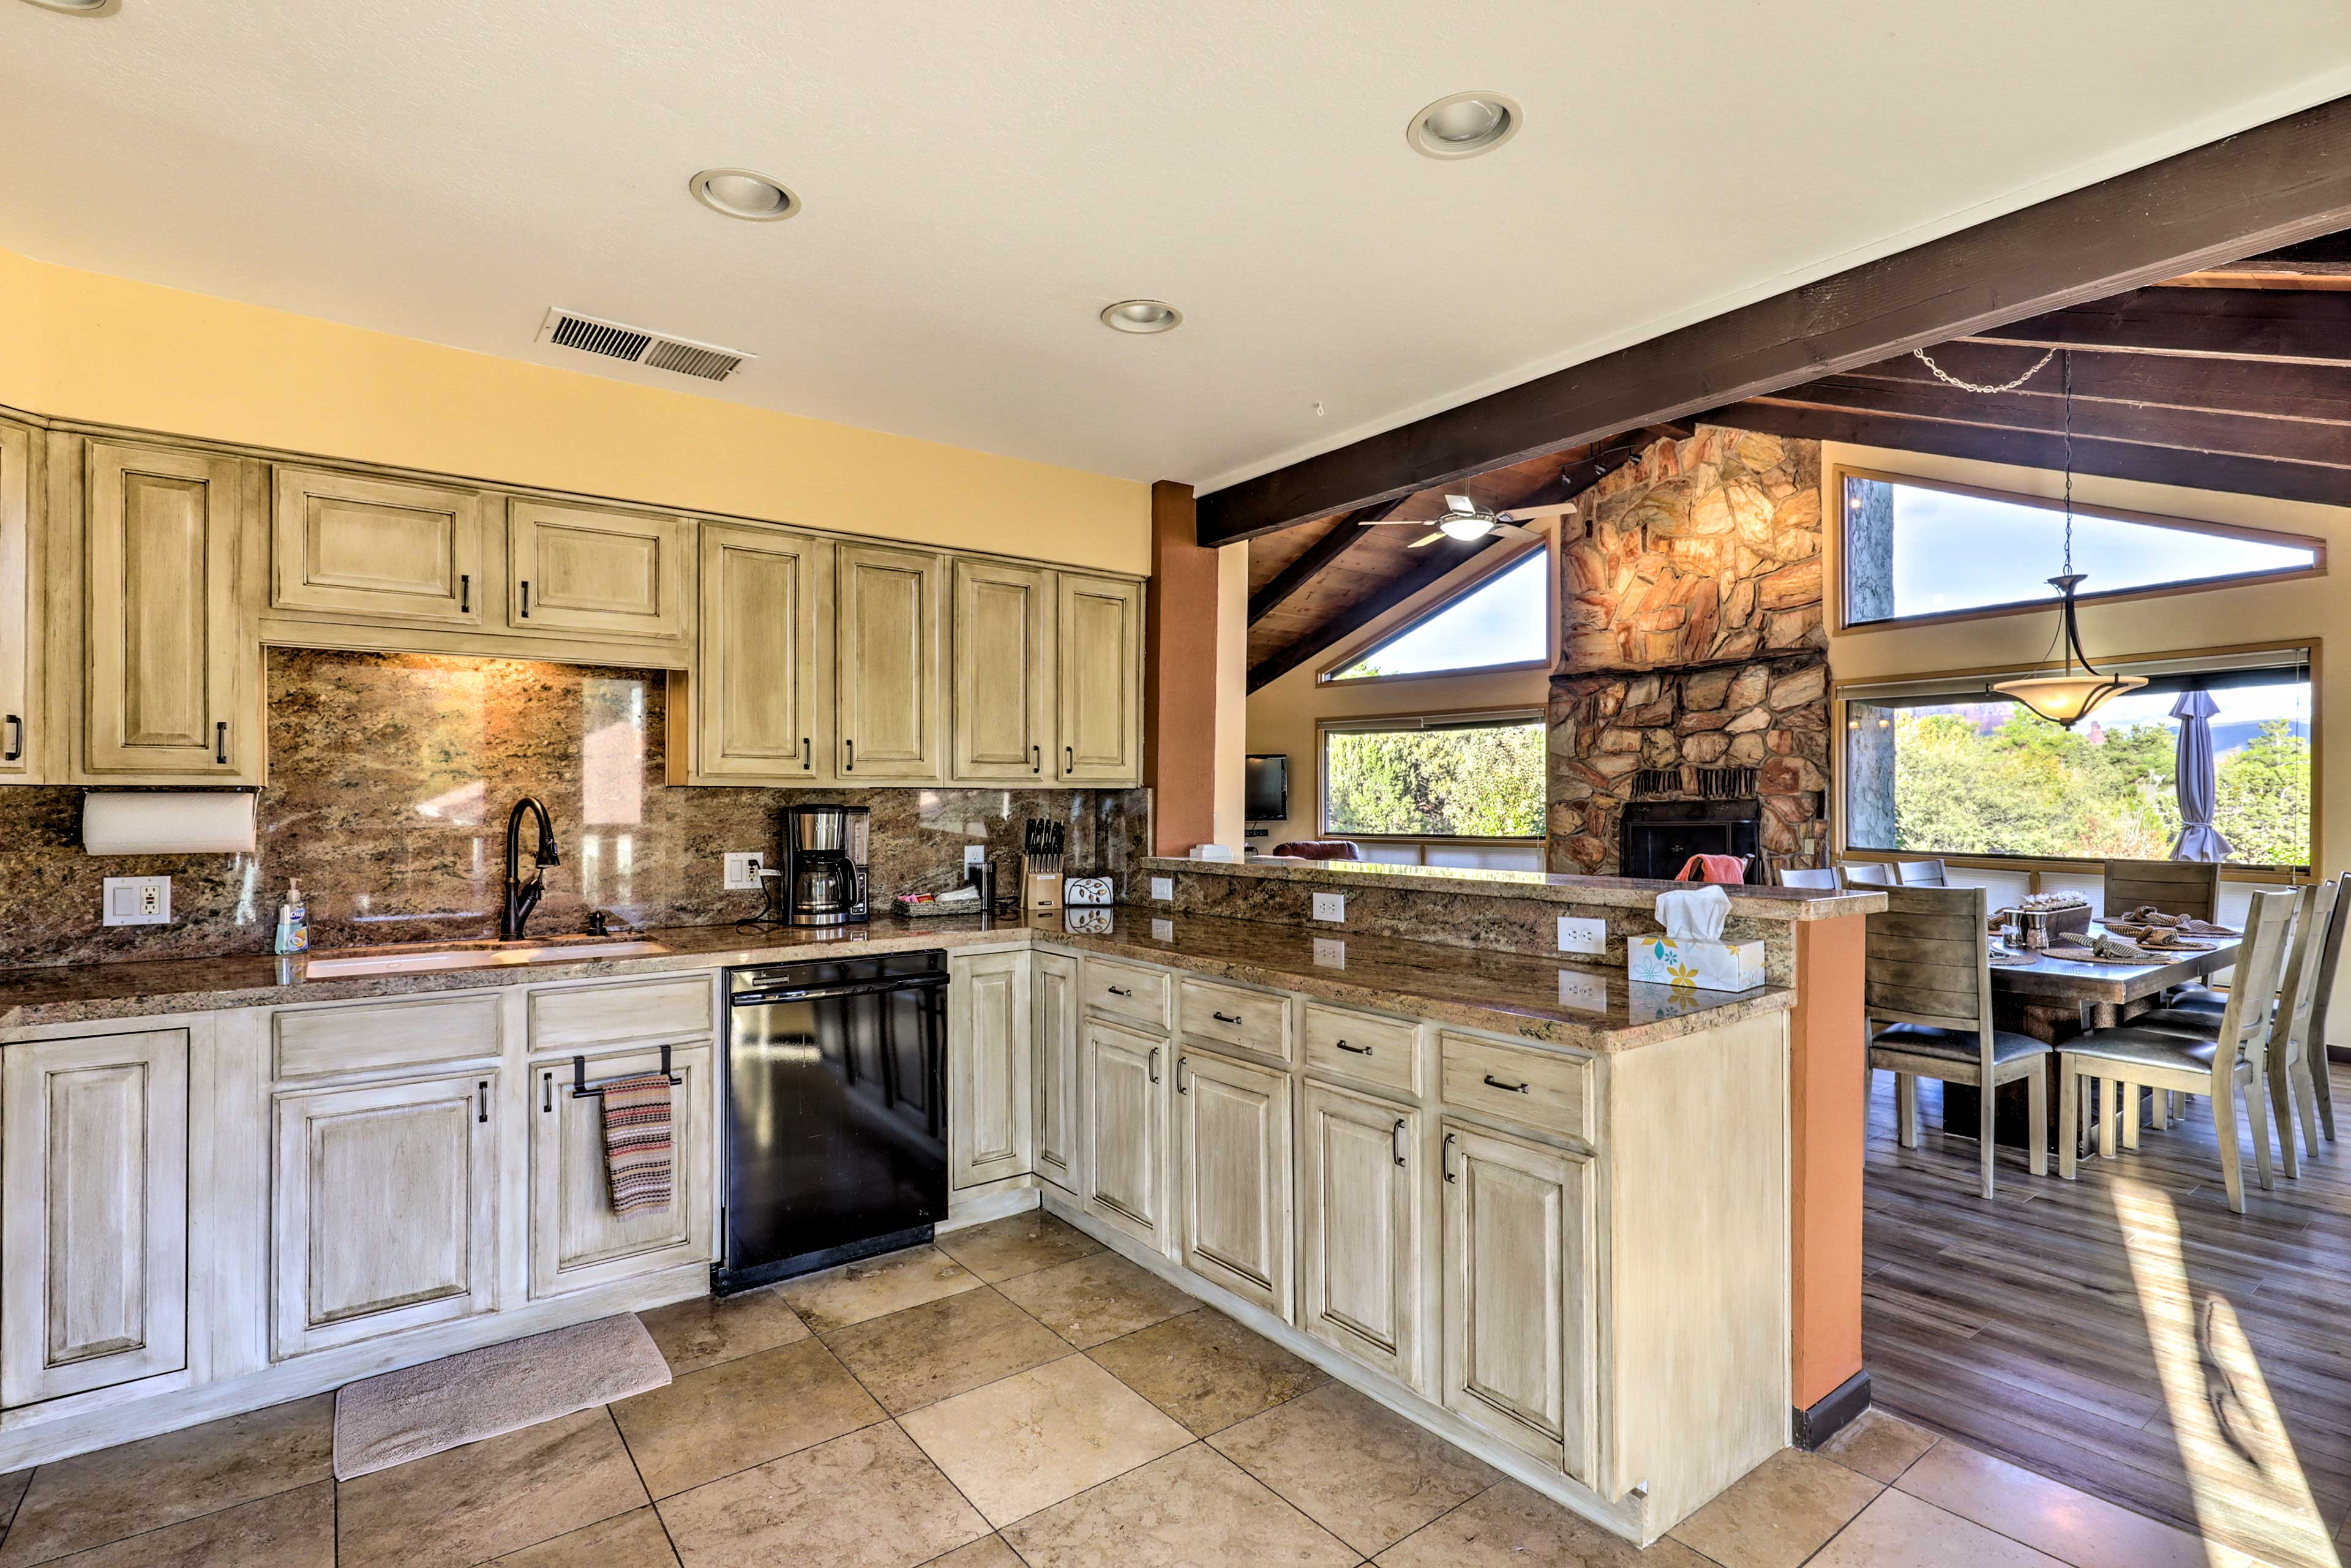 The breakfast bar is perfect for serving some appetizers before dinner!